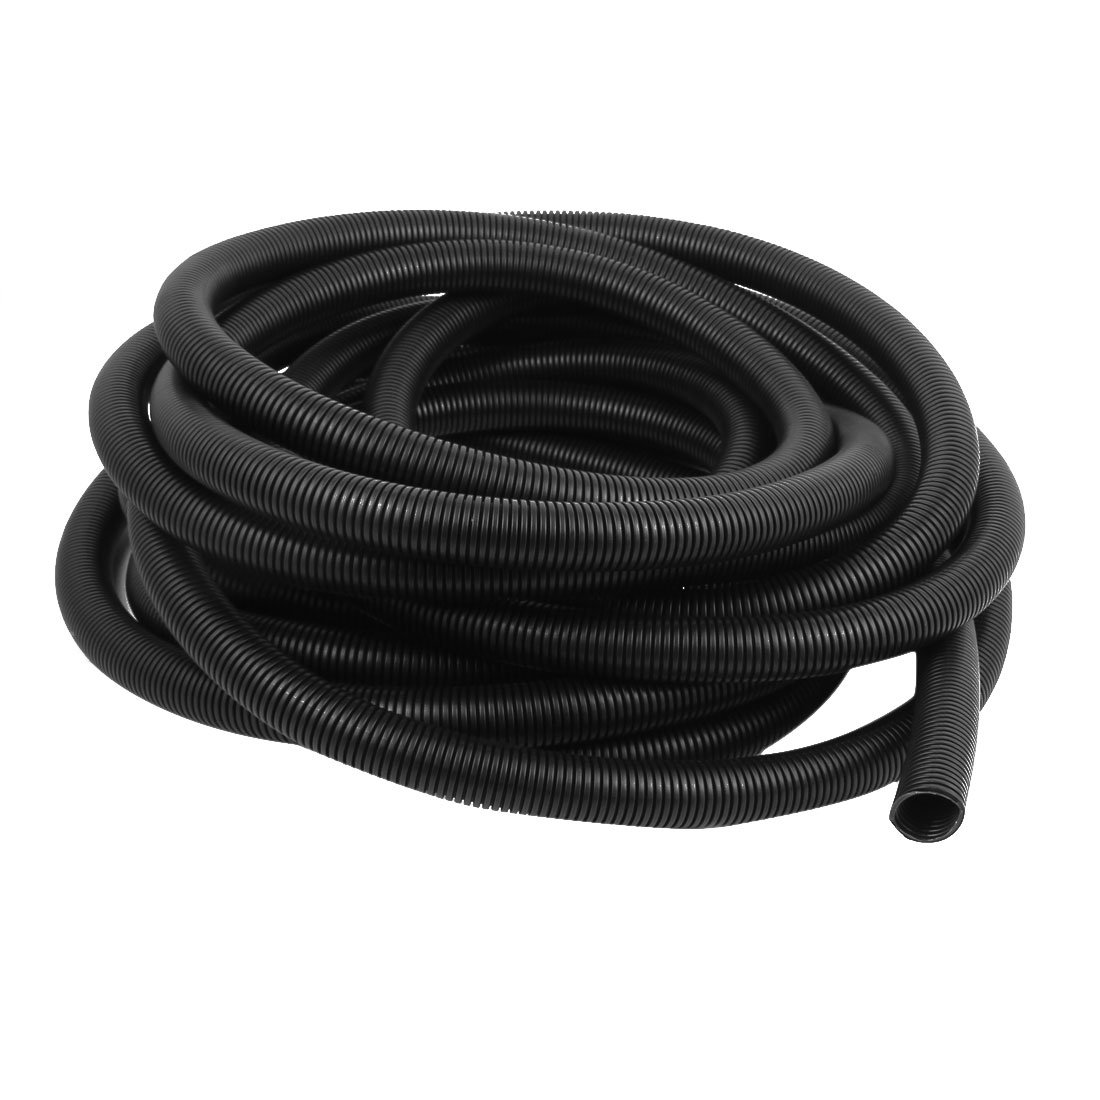 uxcell 3/4'' Flexible Wire Loom Tubing Electrical Cord Covers Wire Protector, 33 Feet